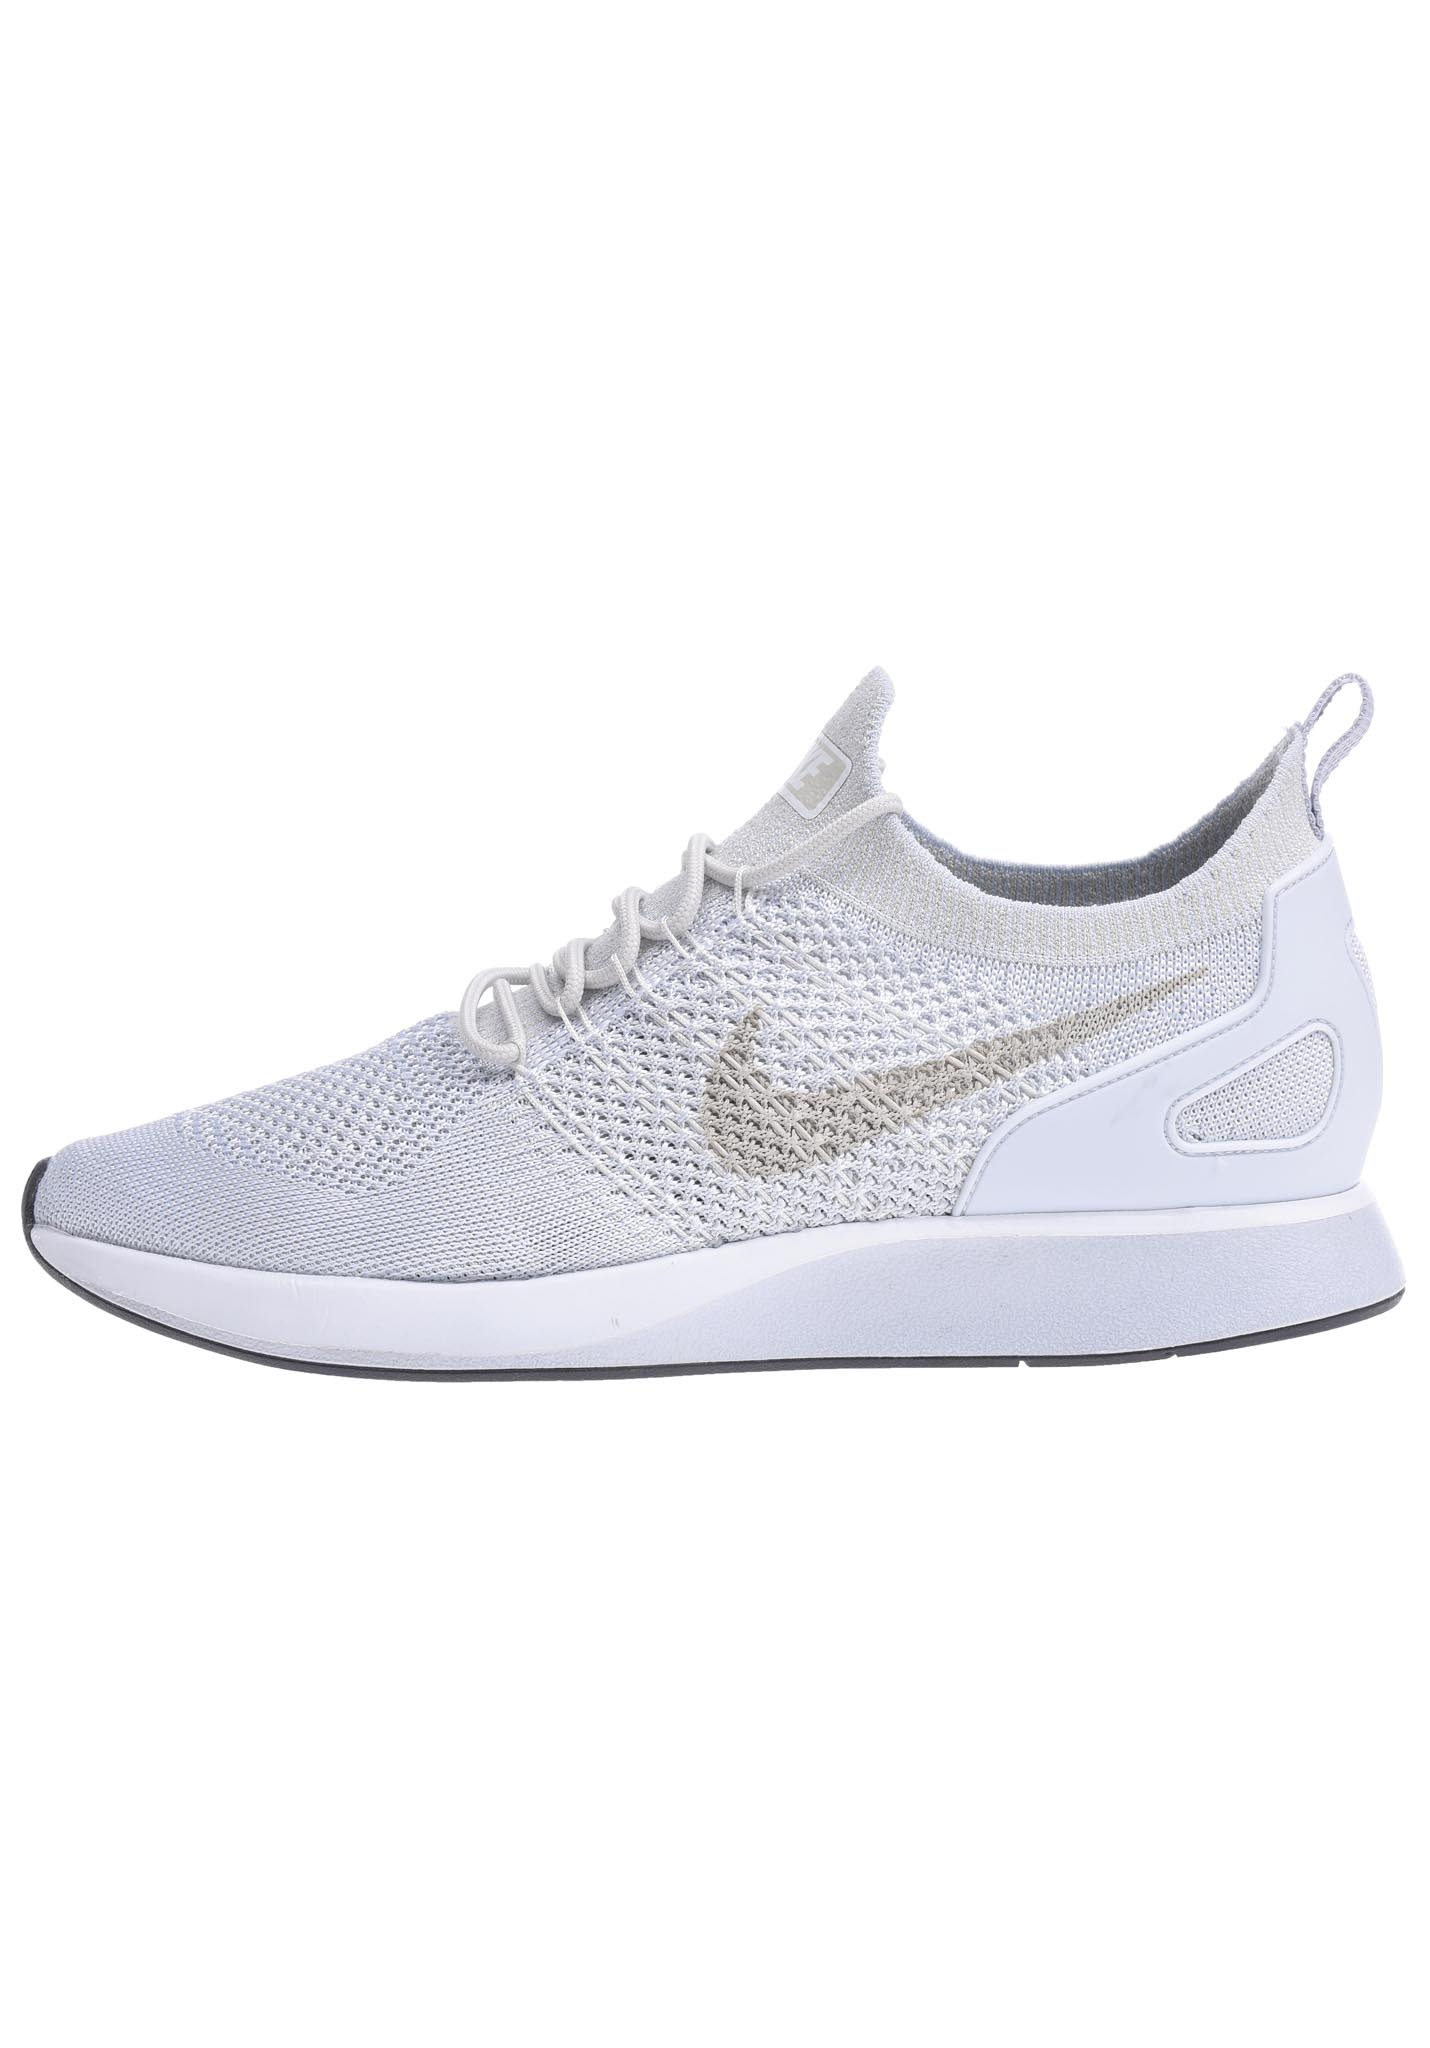 cd531f66a5e3c NIKE SPORTSWEAR Air Zoom Mariah Flyknit Racer - Sneakers for Men - Grey -  Planet Sports